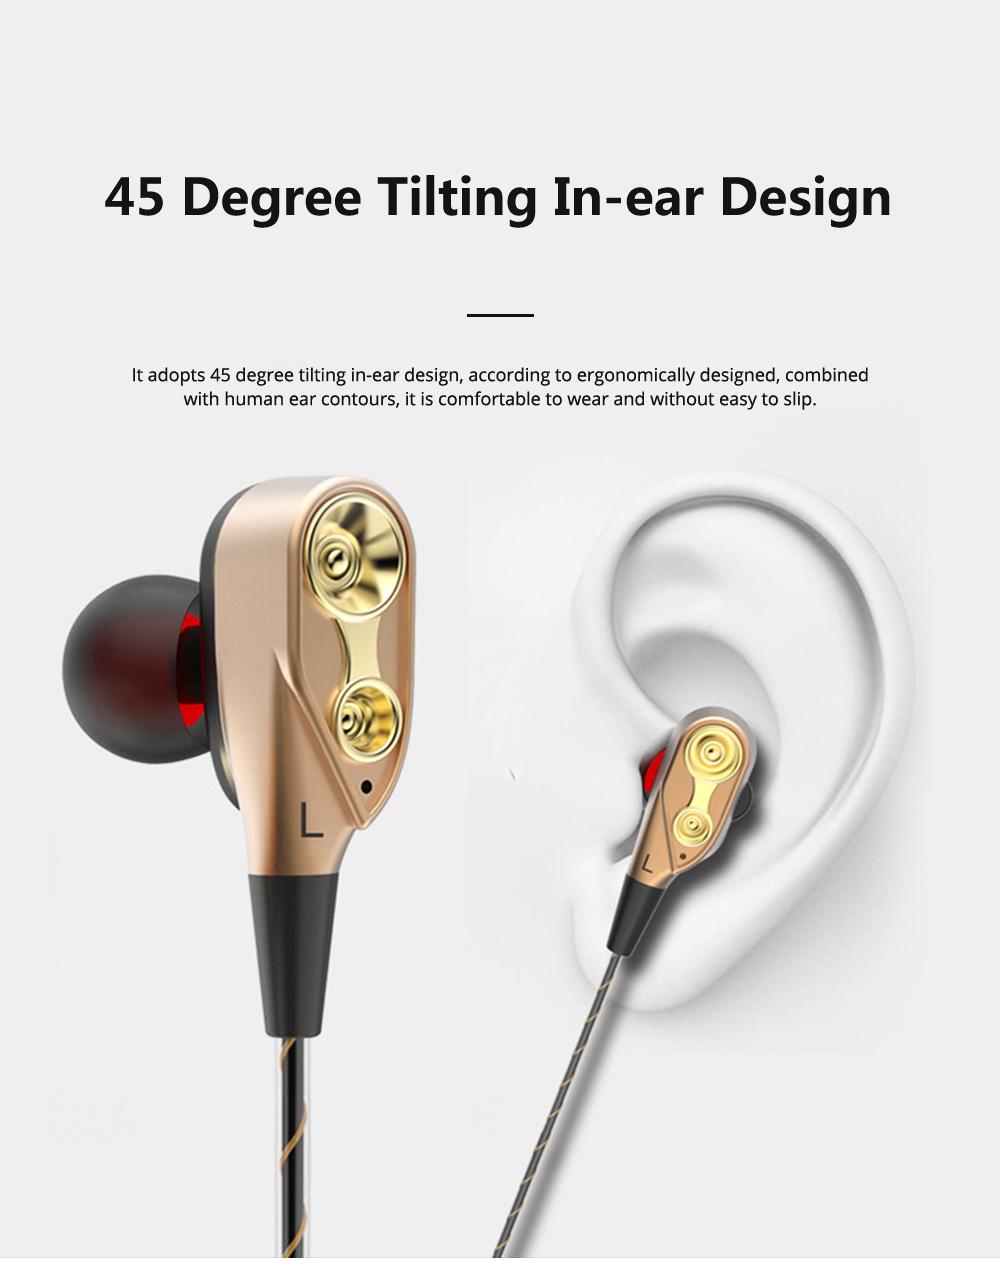 HIFI Heavy Bass Metal Sports Headsets Wired Mobile Phone In Ear Earphone Type C HD Voice Headphones For Cell Phone MP3 Player 6